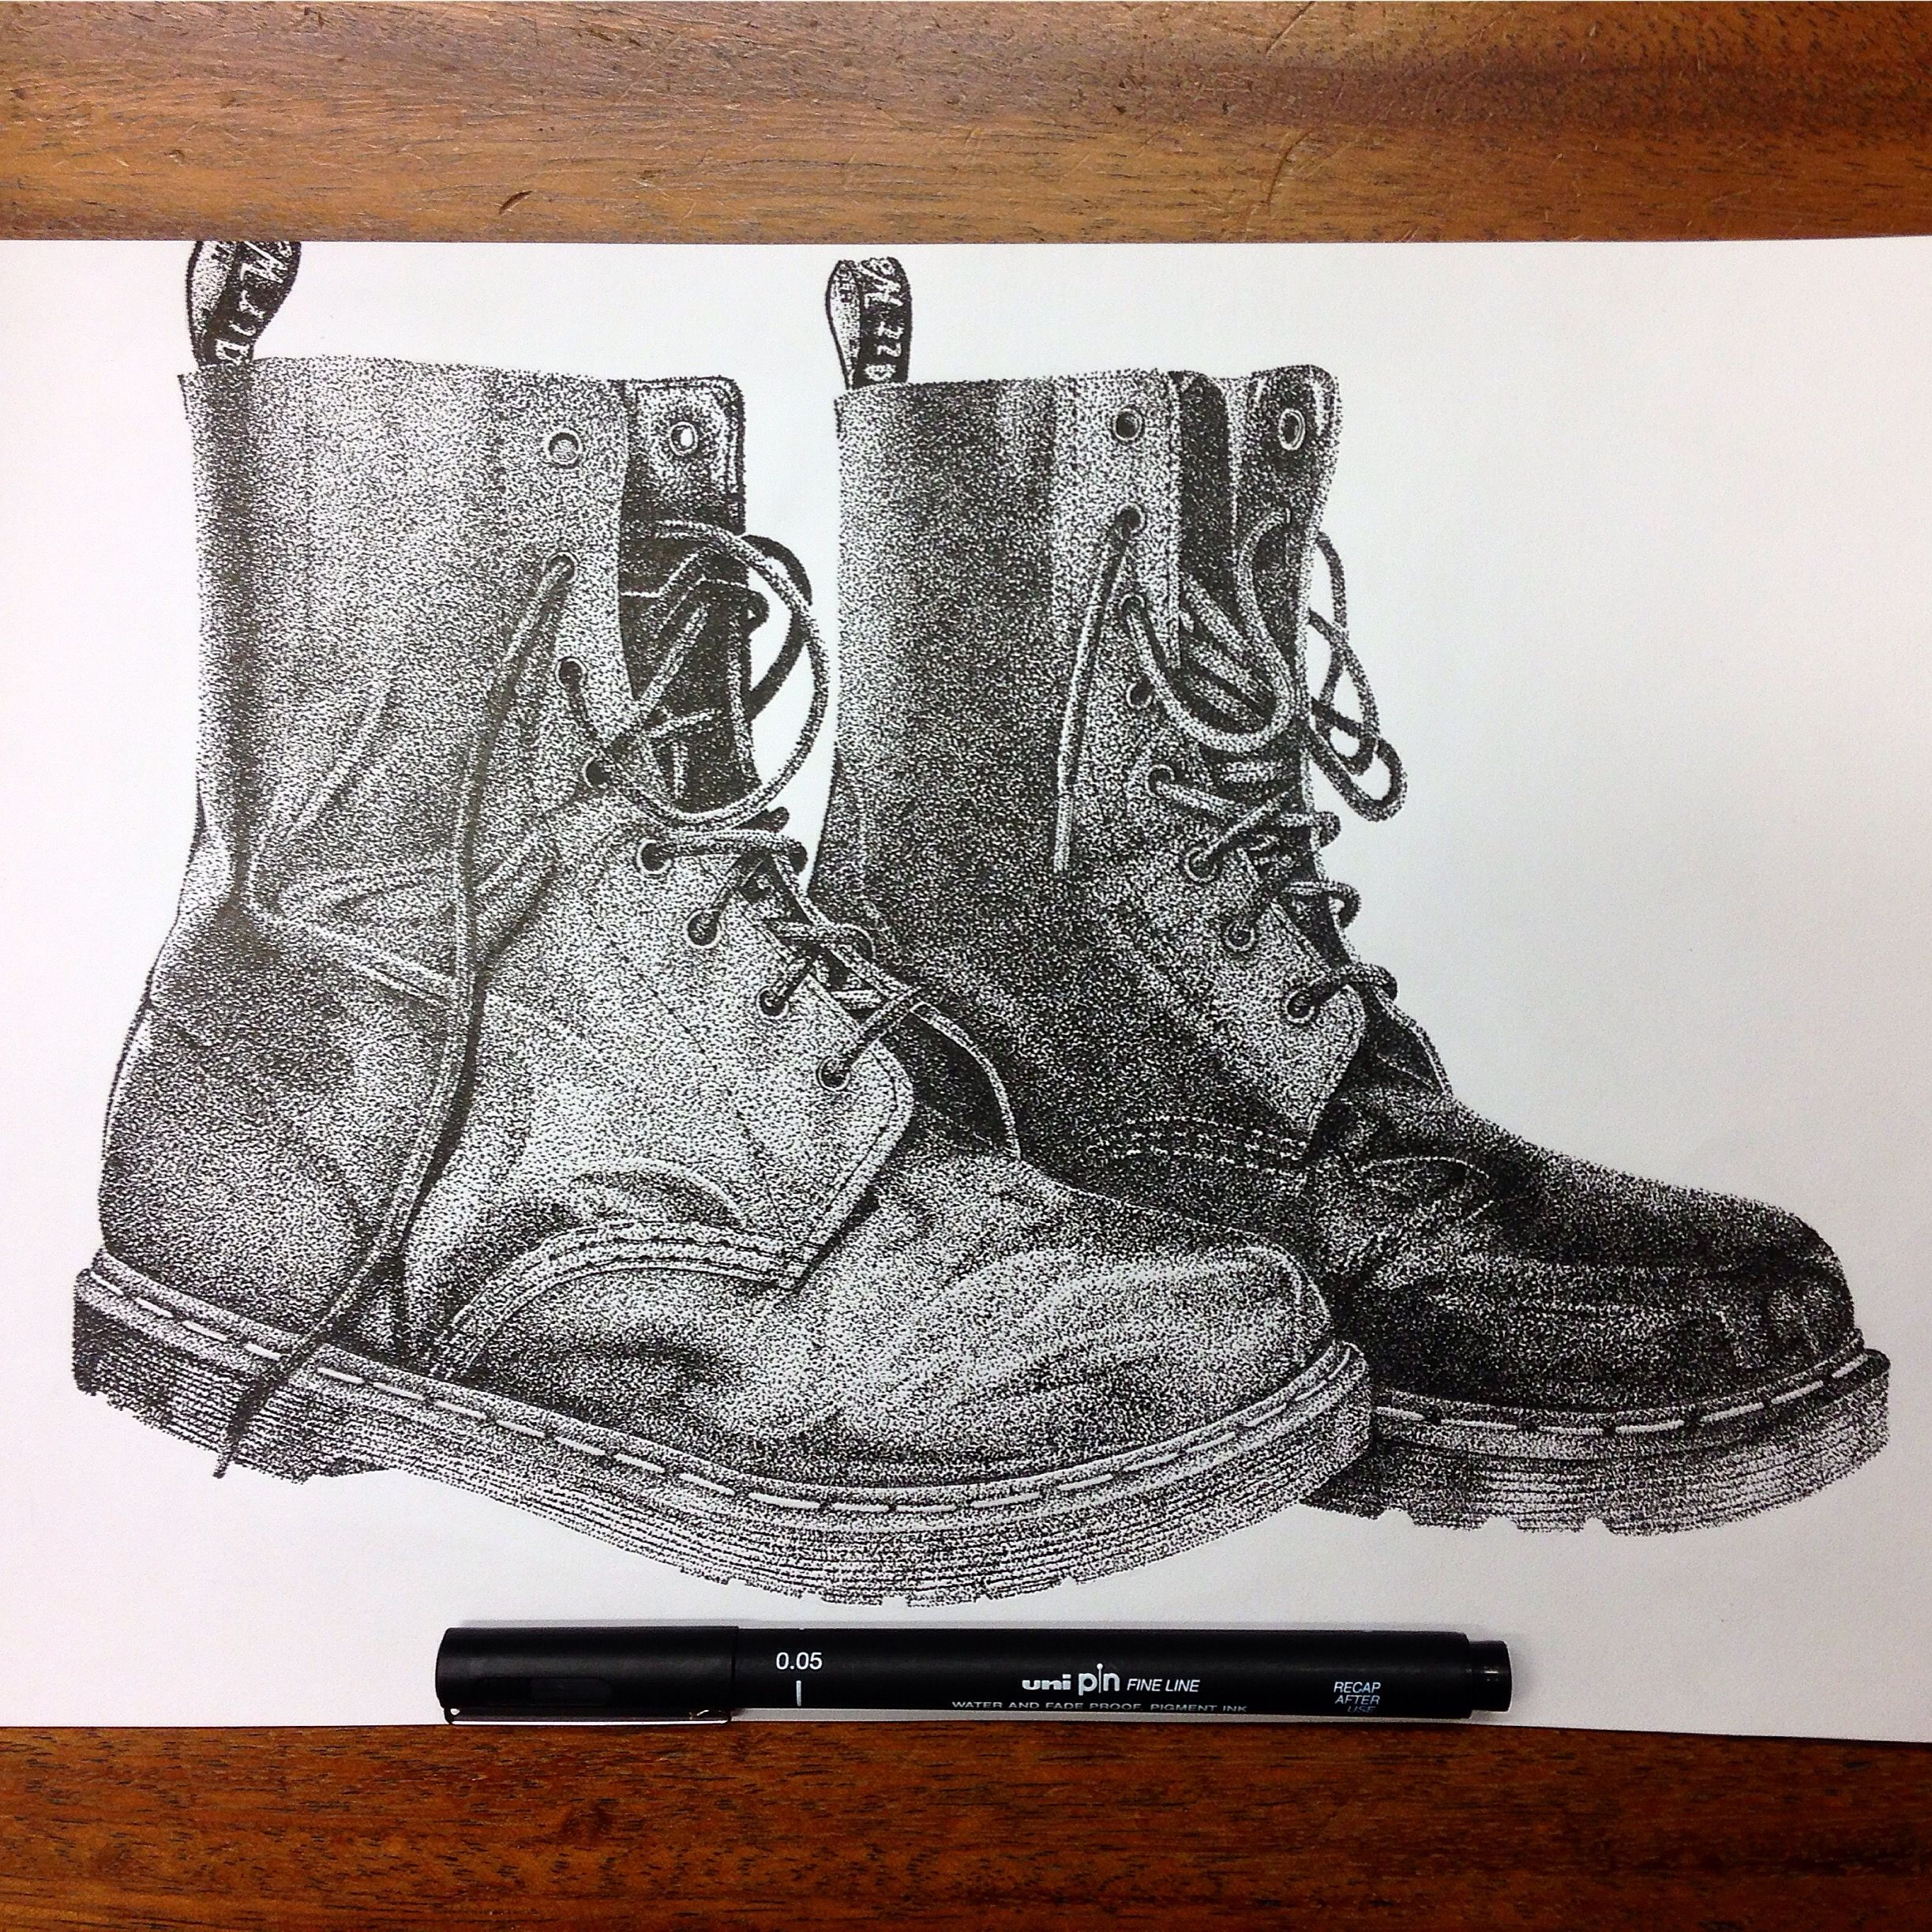 8a188f590ec Dr Martens dotwork drawing